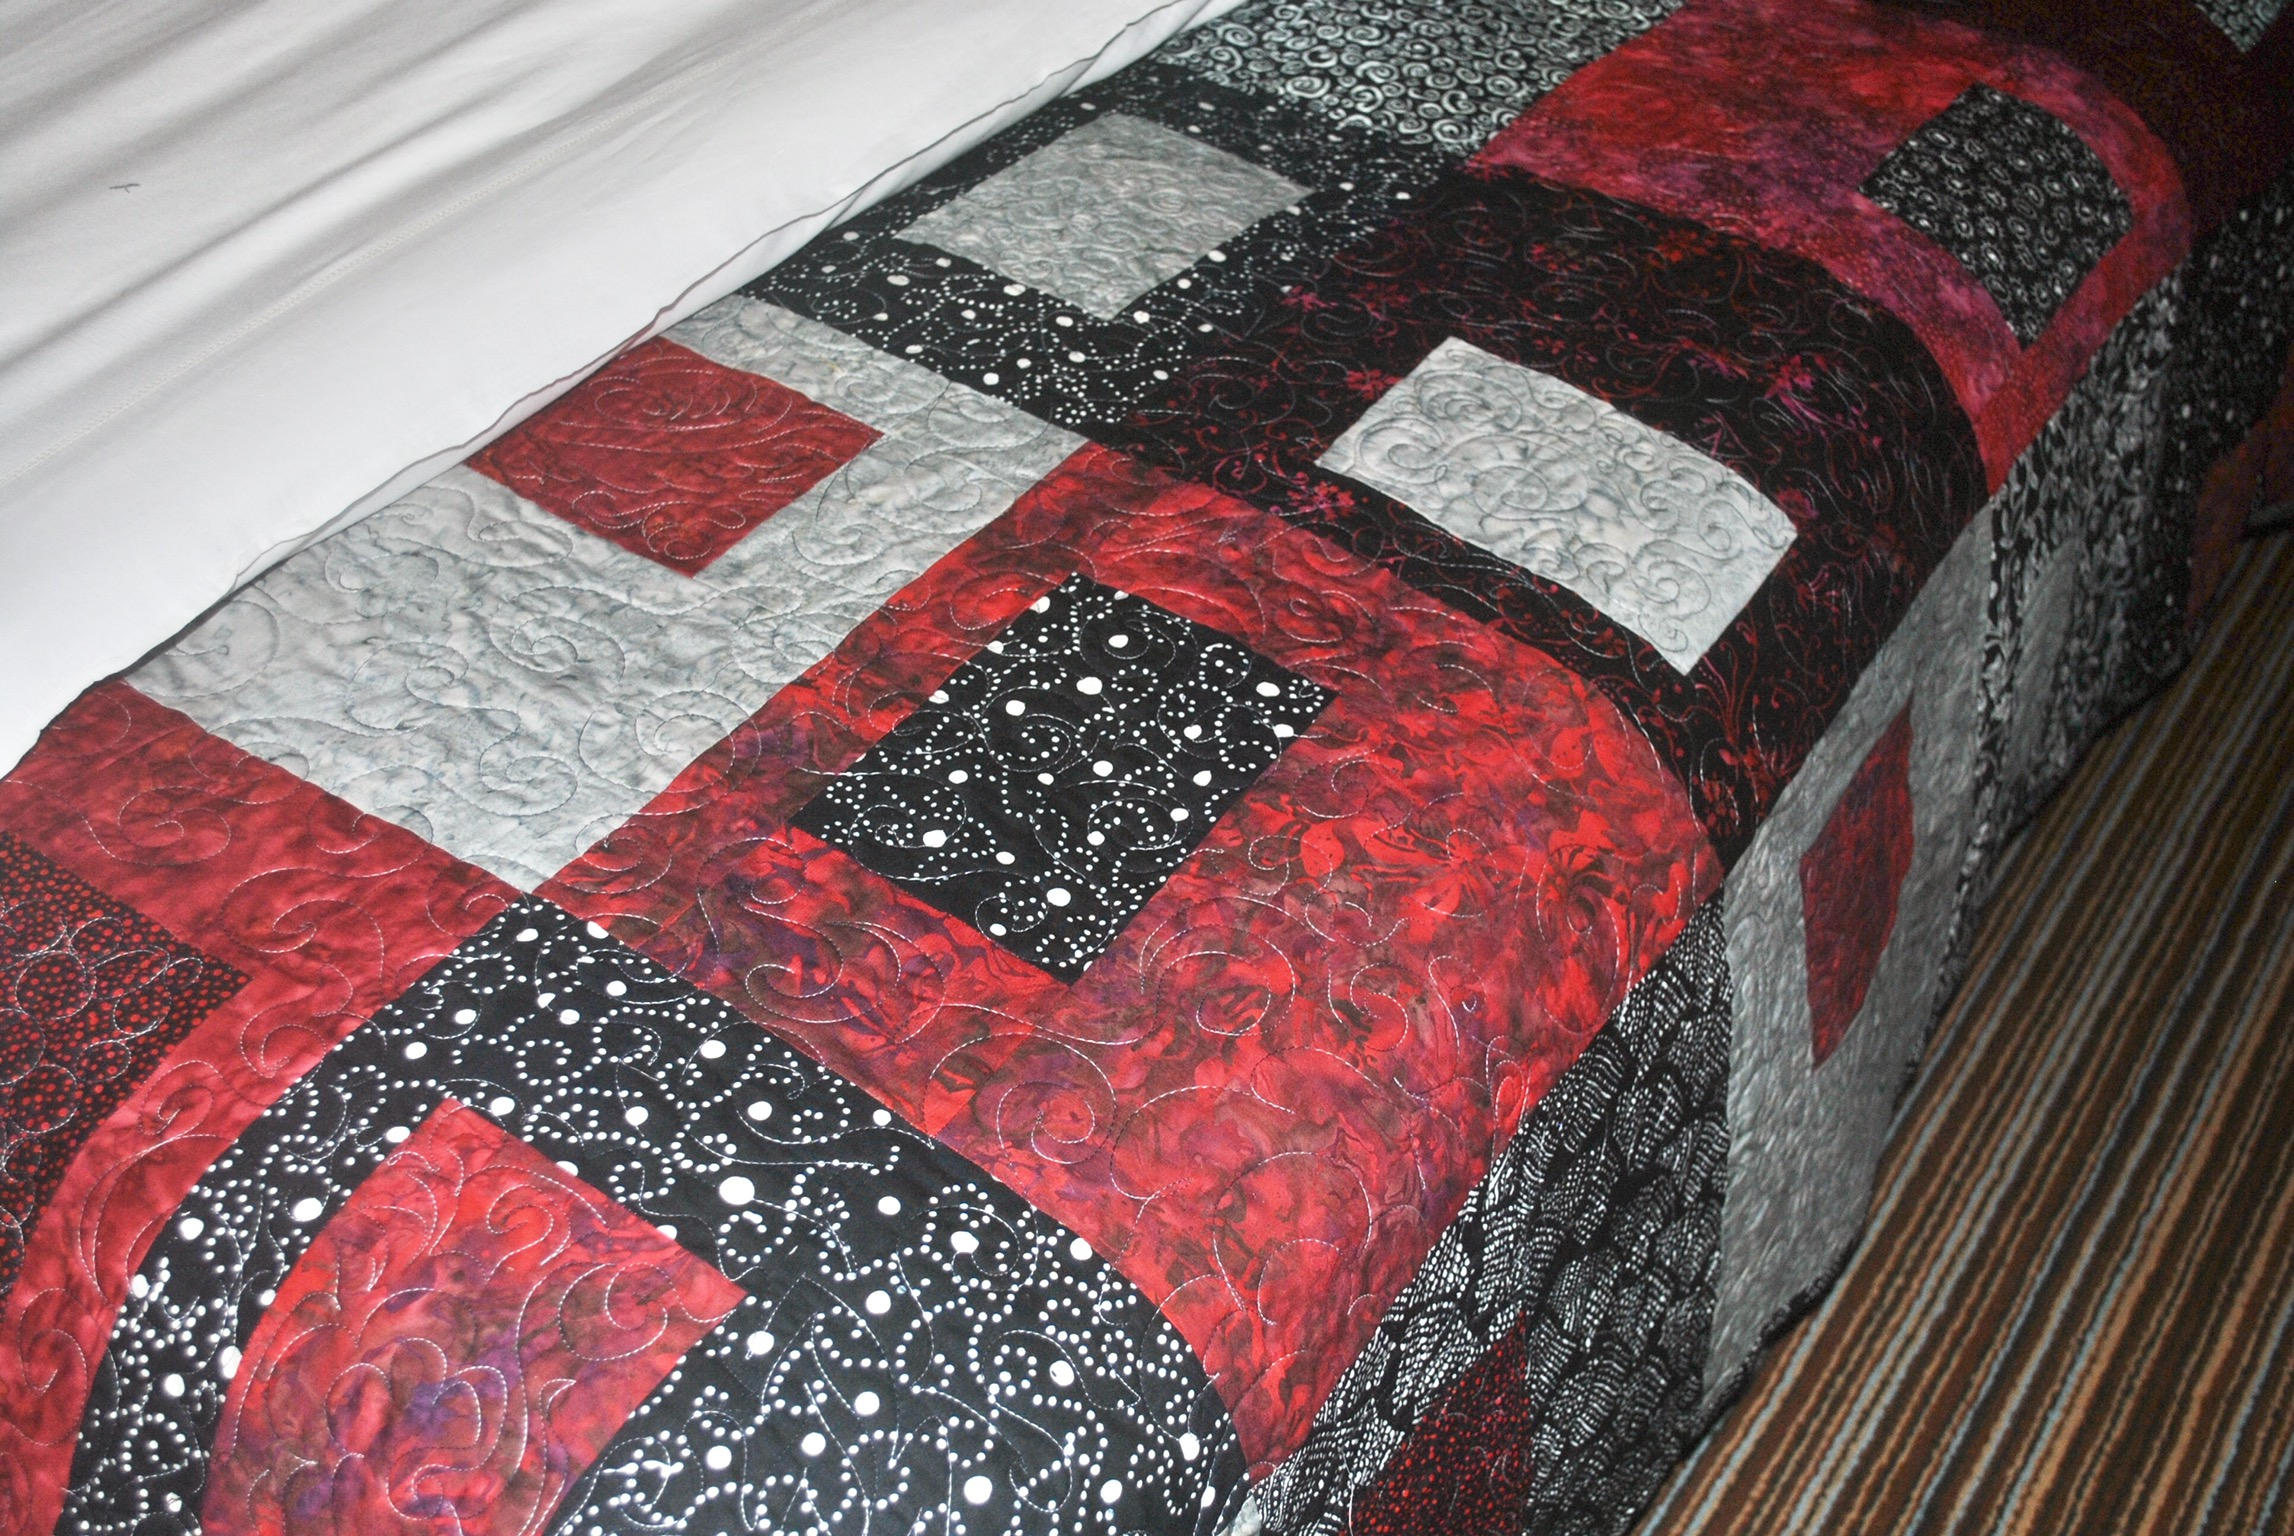 Free motion quilting on large block quilt